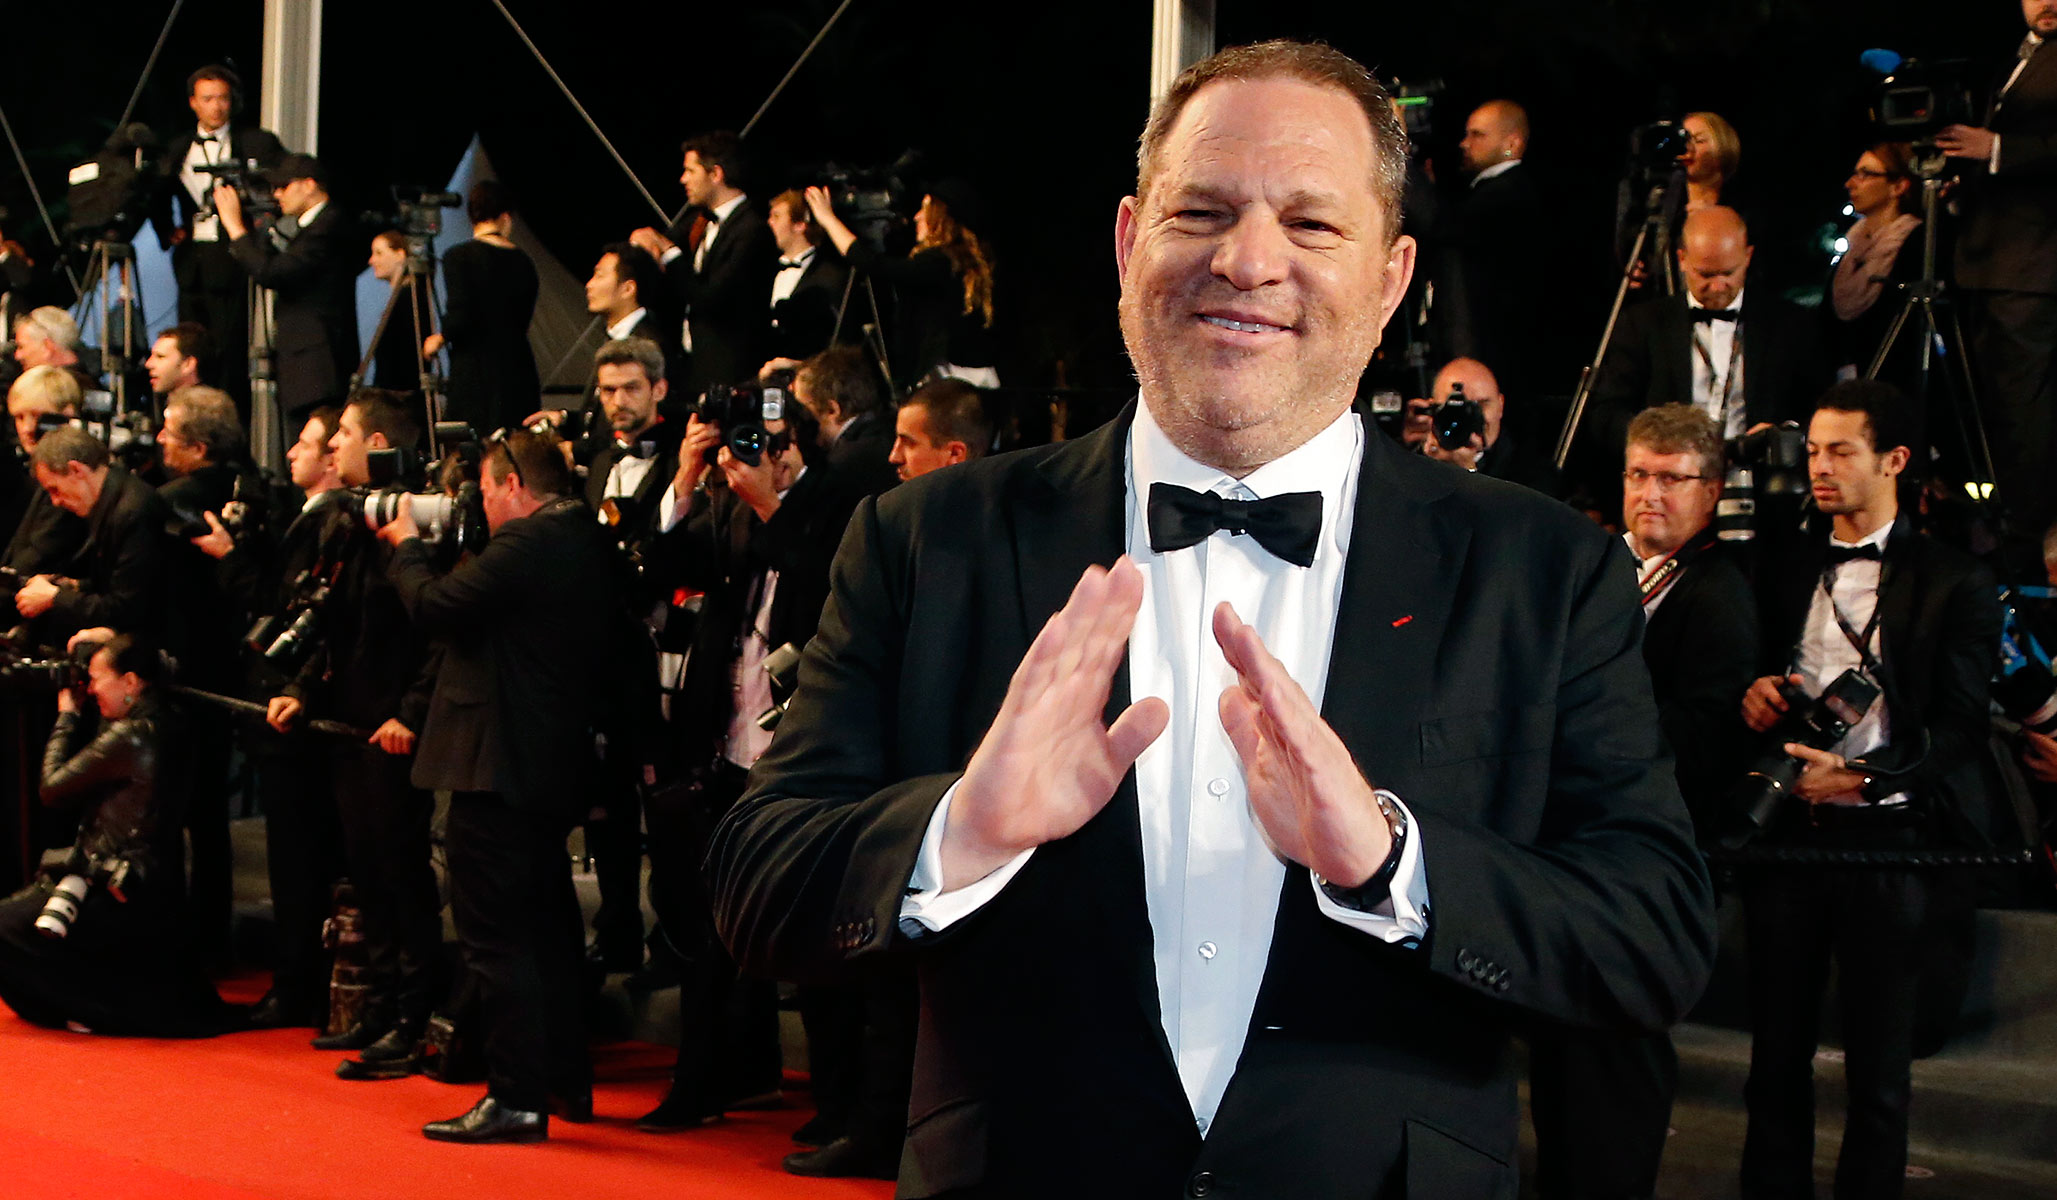 Cannes Film Festival has not been without a loud sex scandal